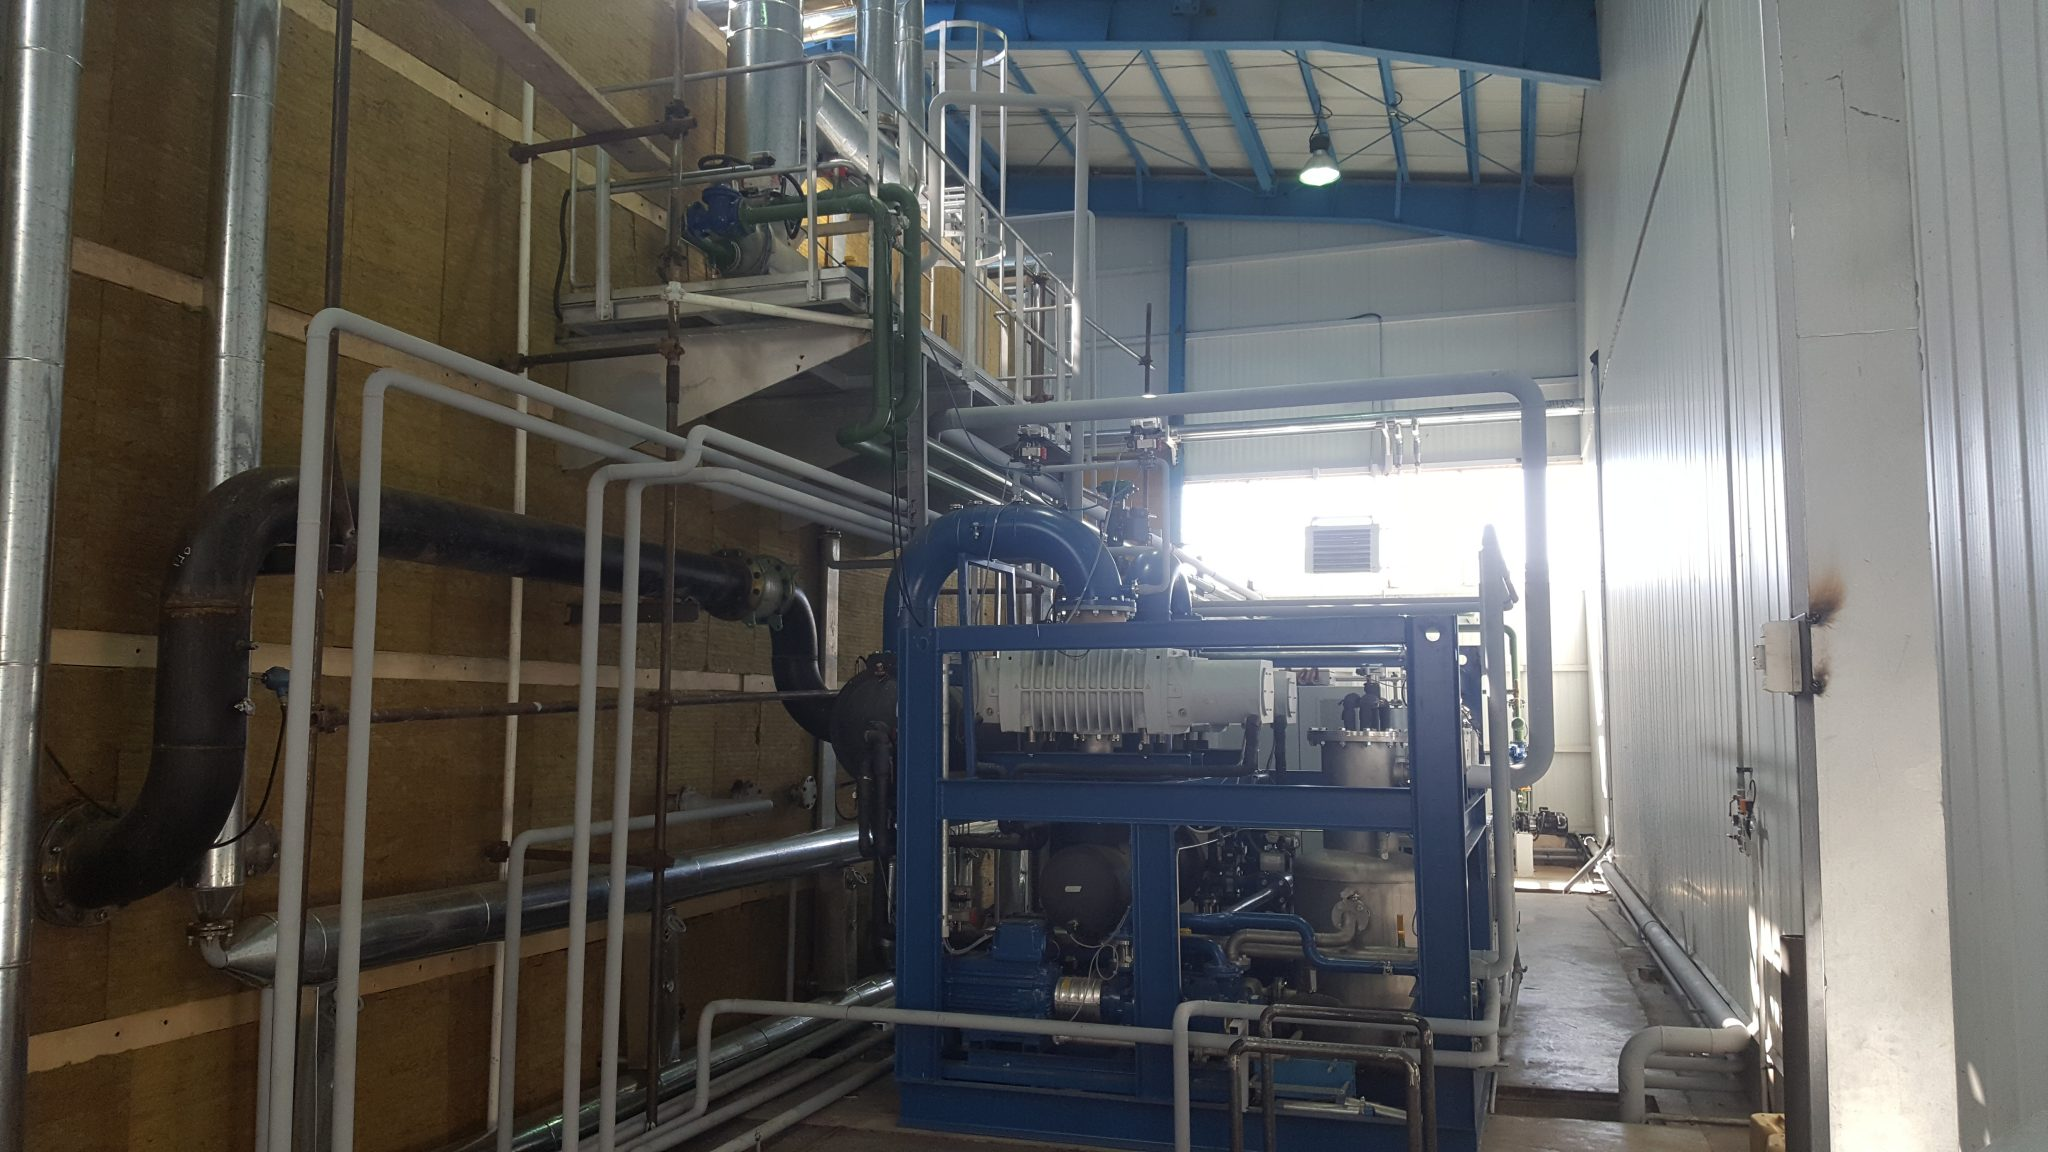 Hering transformer vacuum drying oven pumping station 2